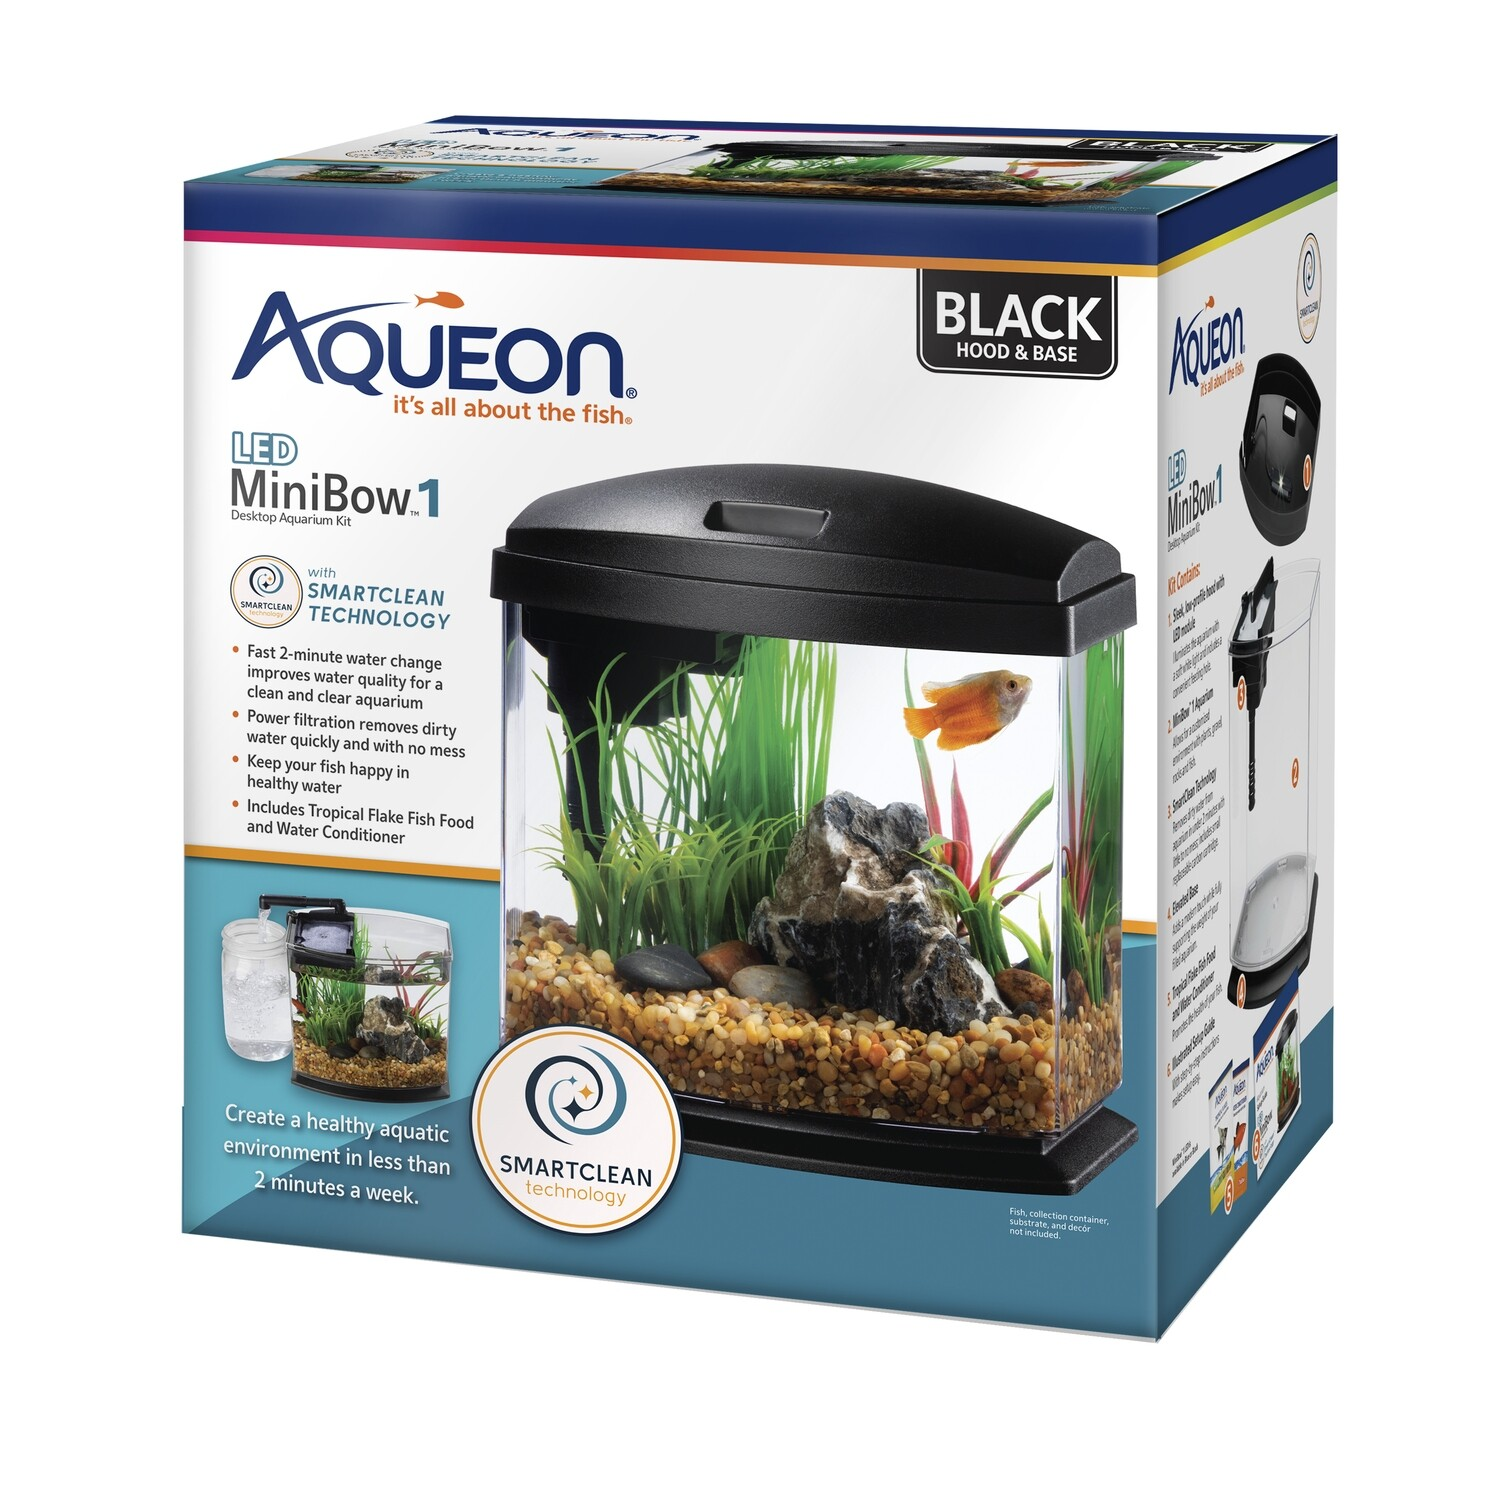 Aqueon LED MiniBow 1 - Black - 1 gal